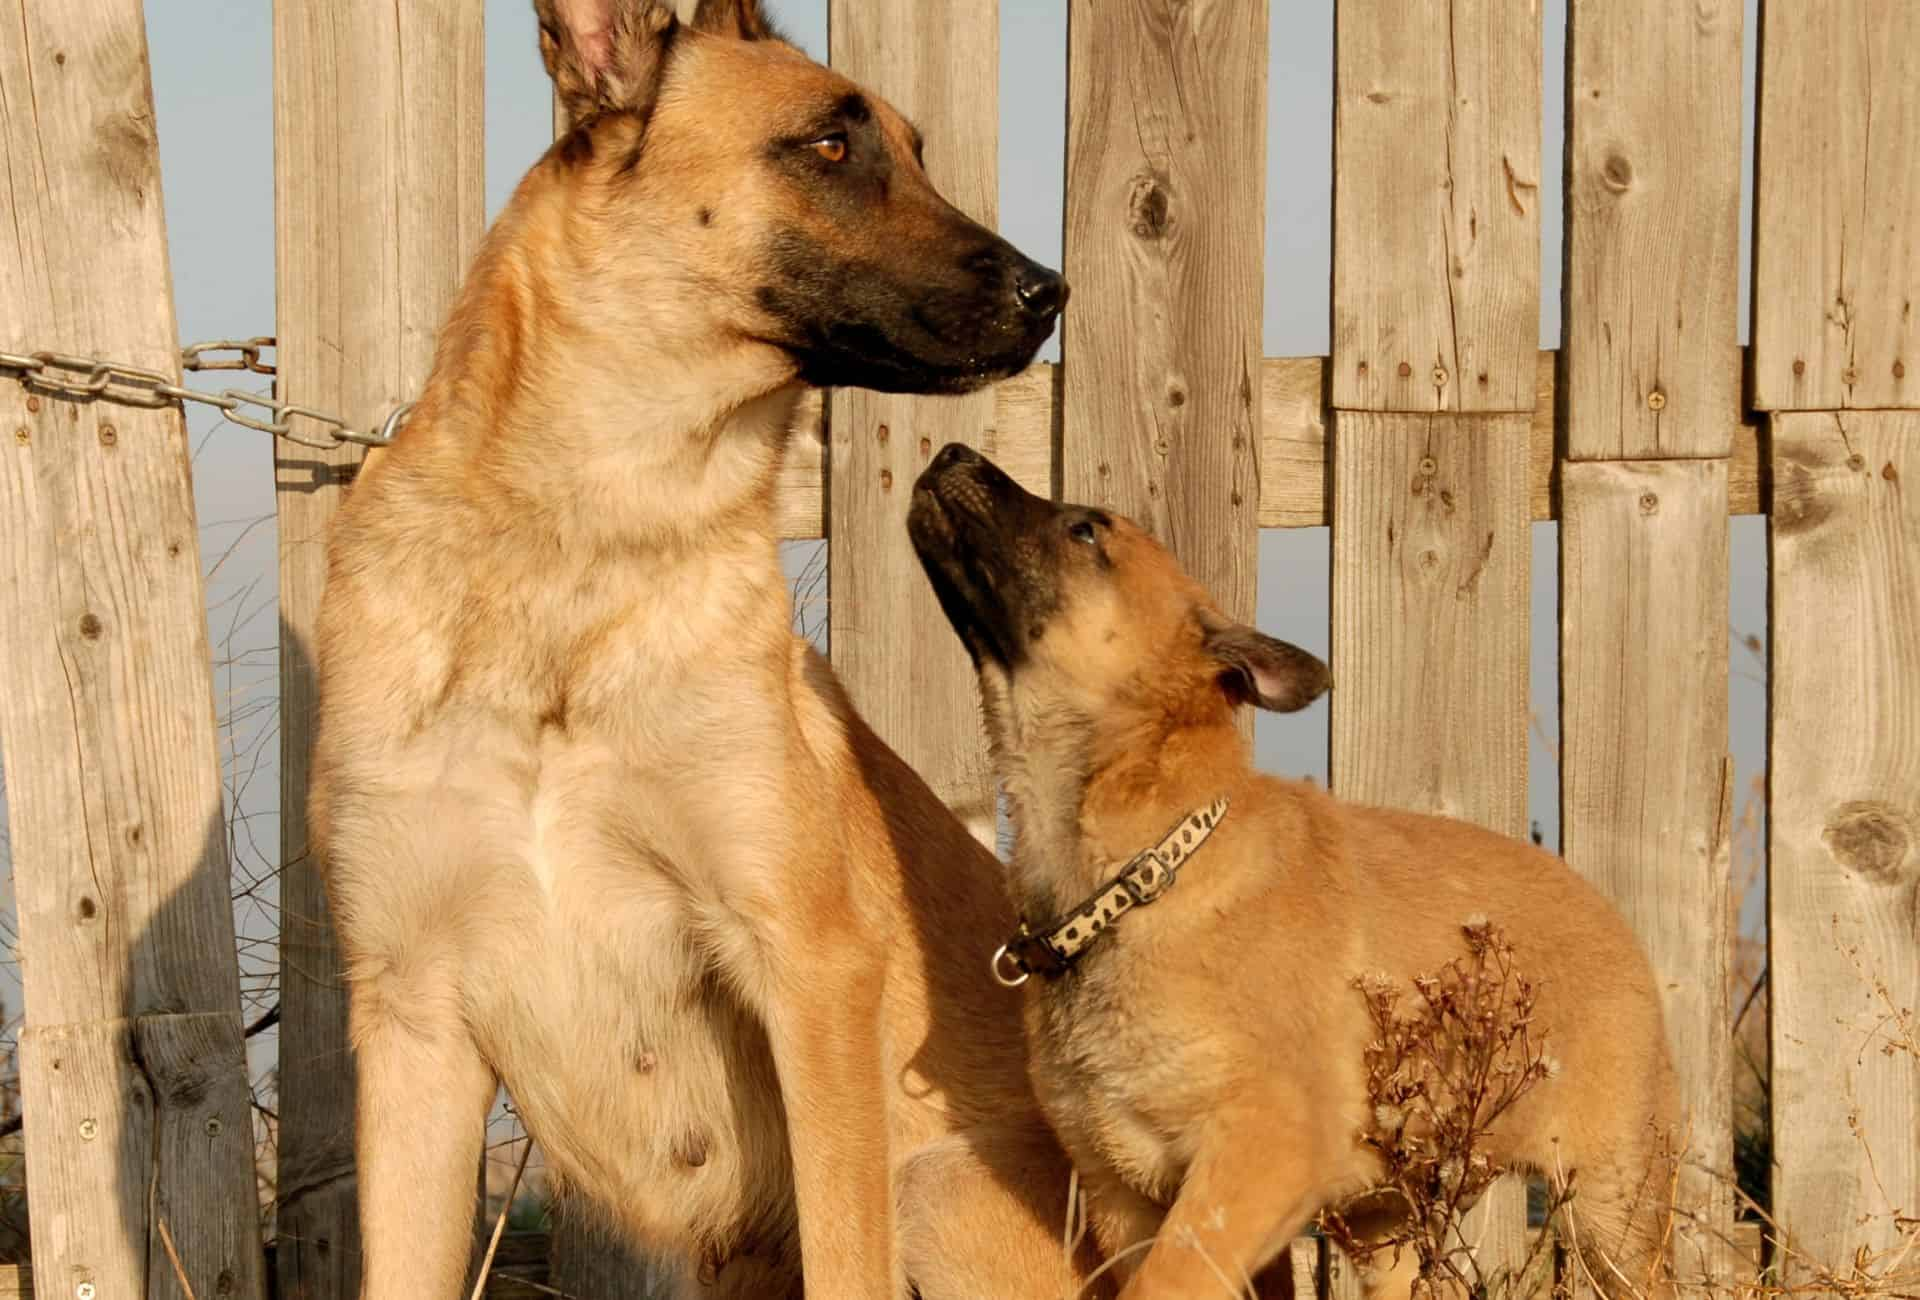 Malinois puppy reaches for his mother's snout.